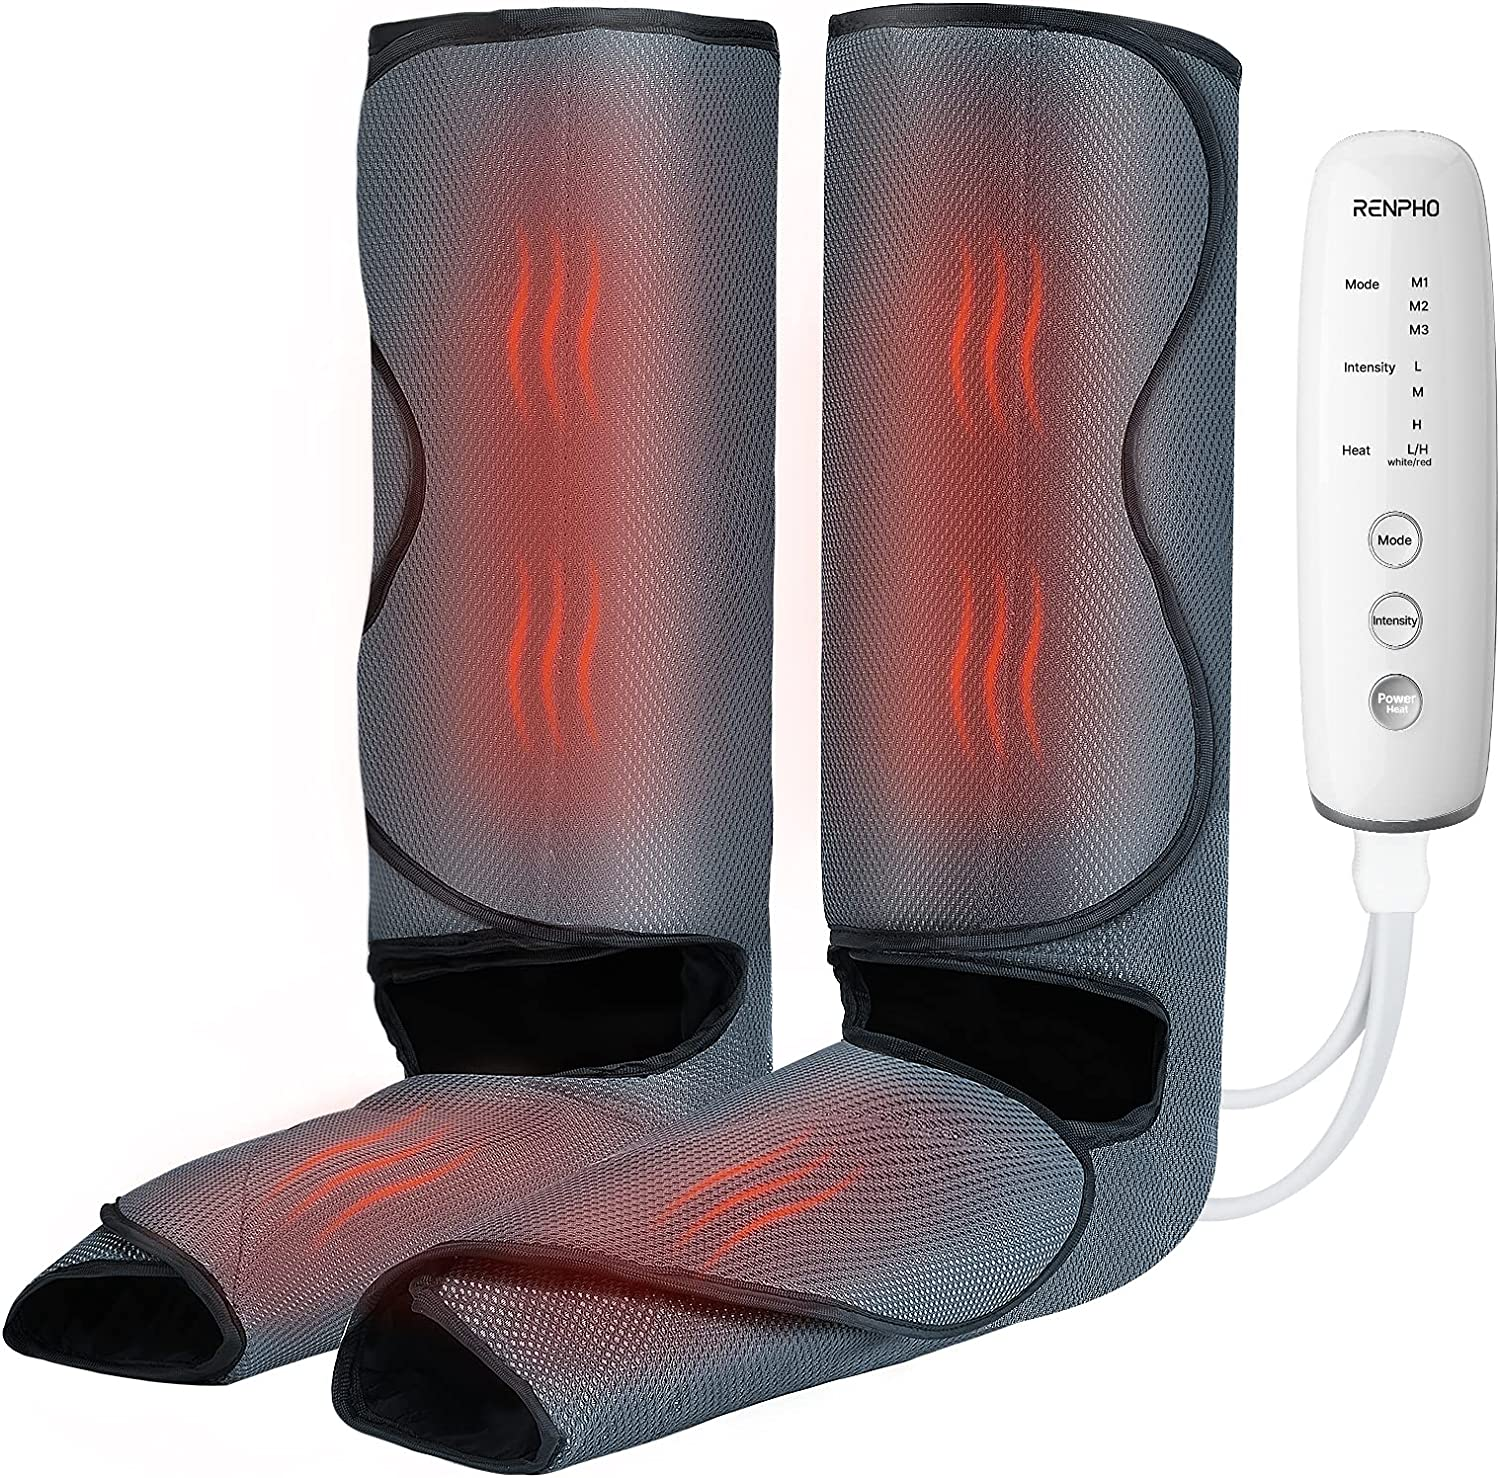 RENPHO Leg Max 46% OFF Massager with Heat and Foot Massage Calf Compression Ranking TOP11